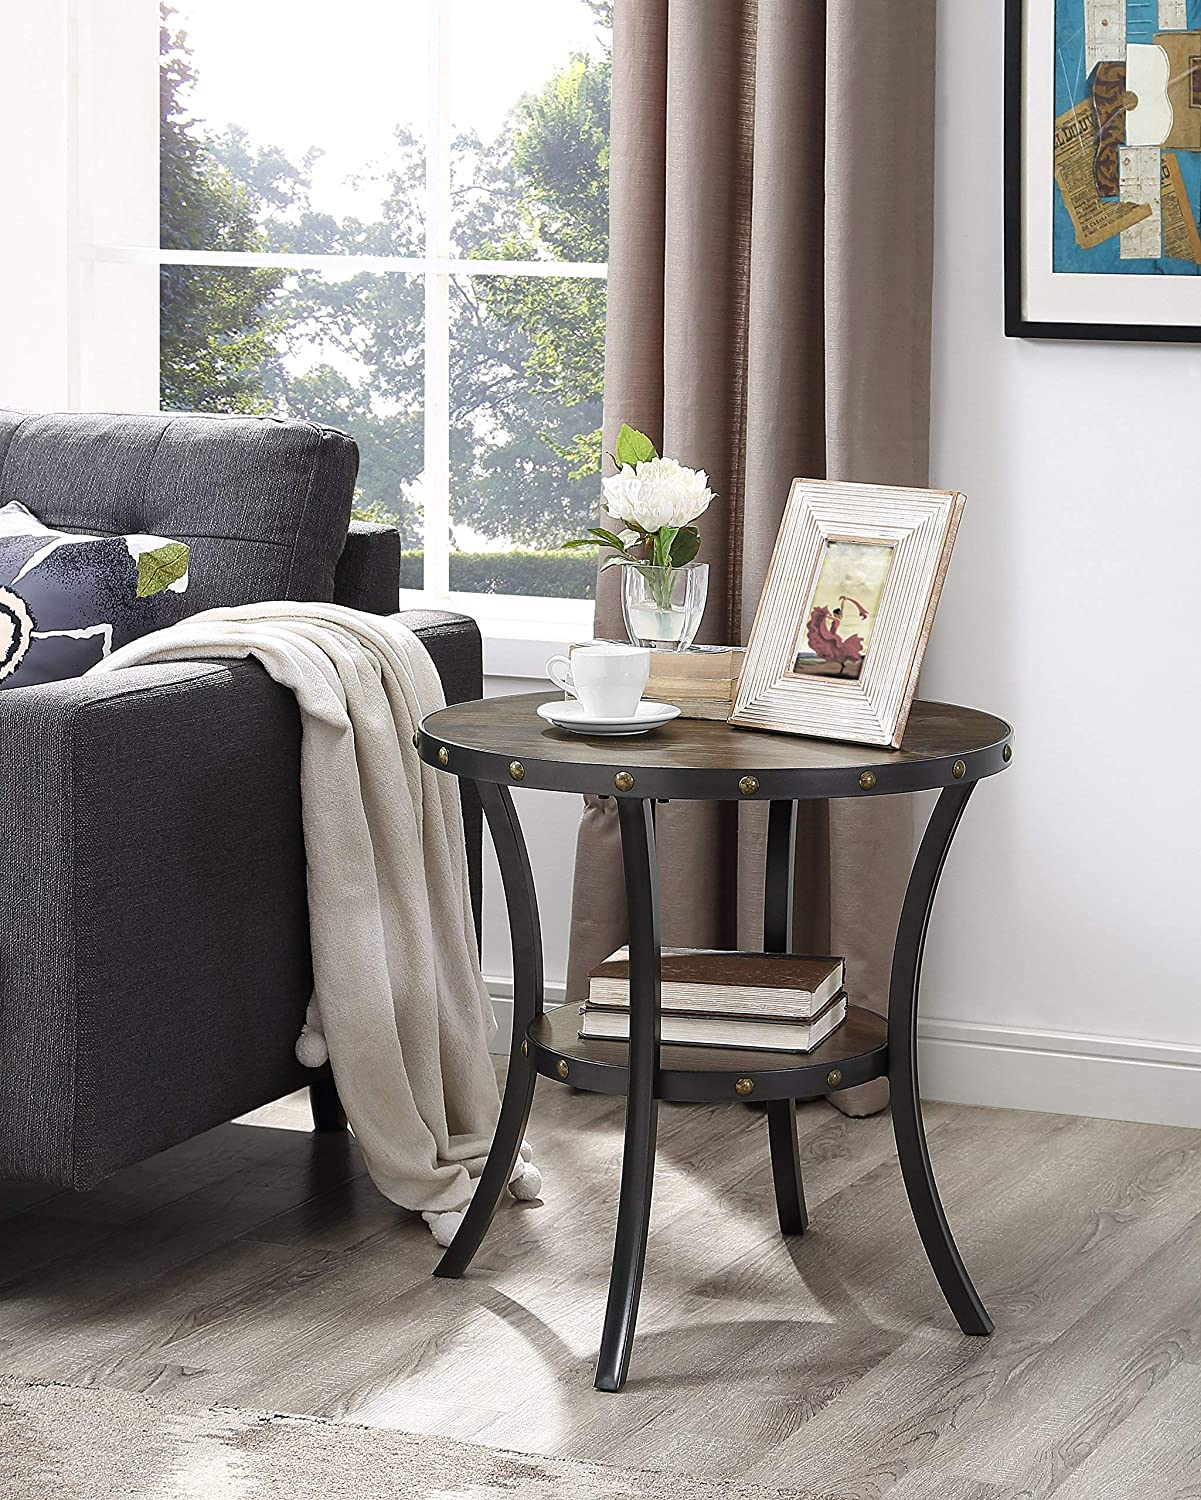 Roundhill Furniture 3362E Biony Espresso Wood End Table with Nail Head Trim,